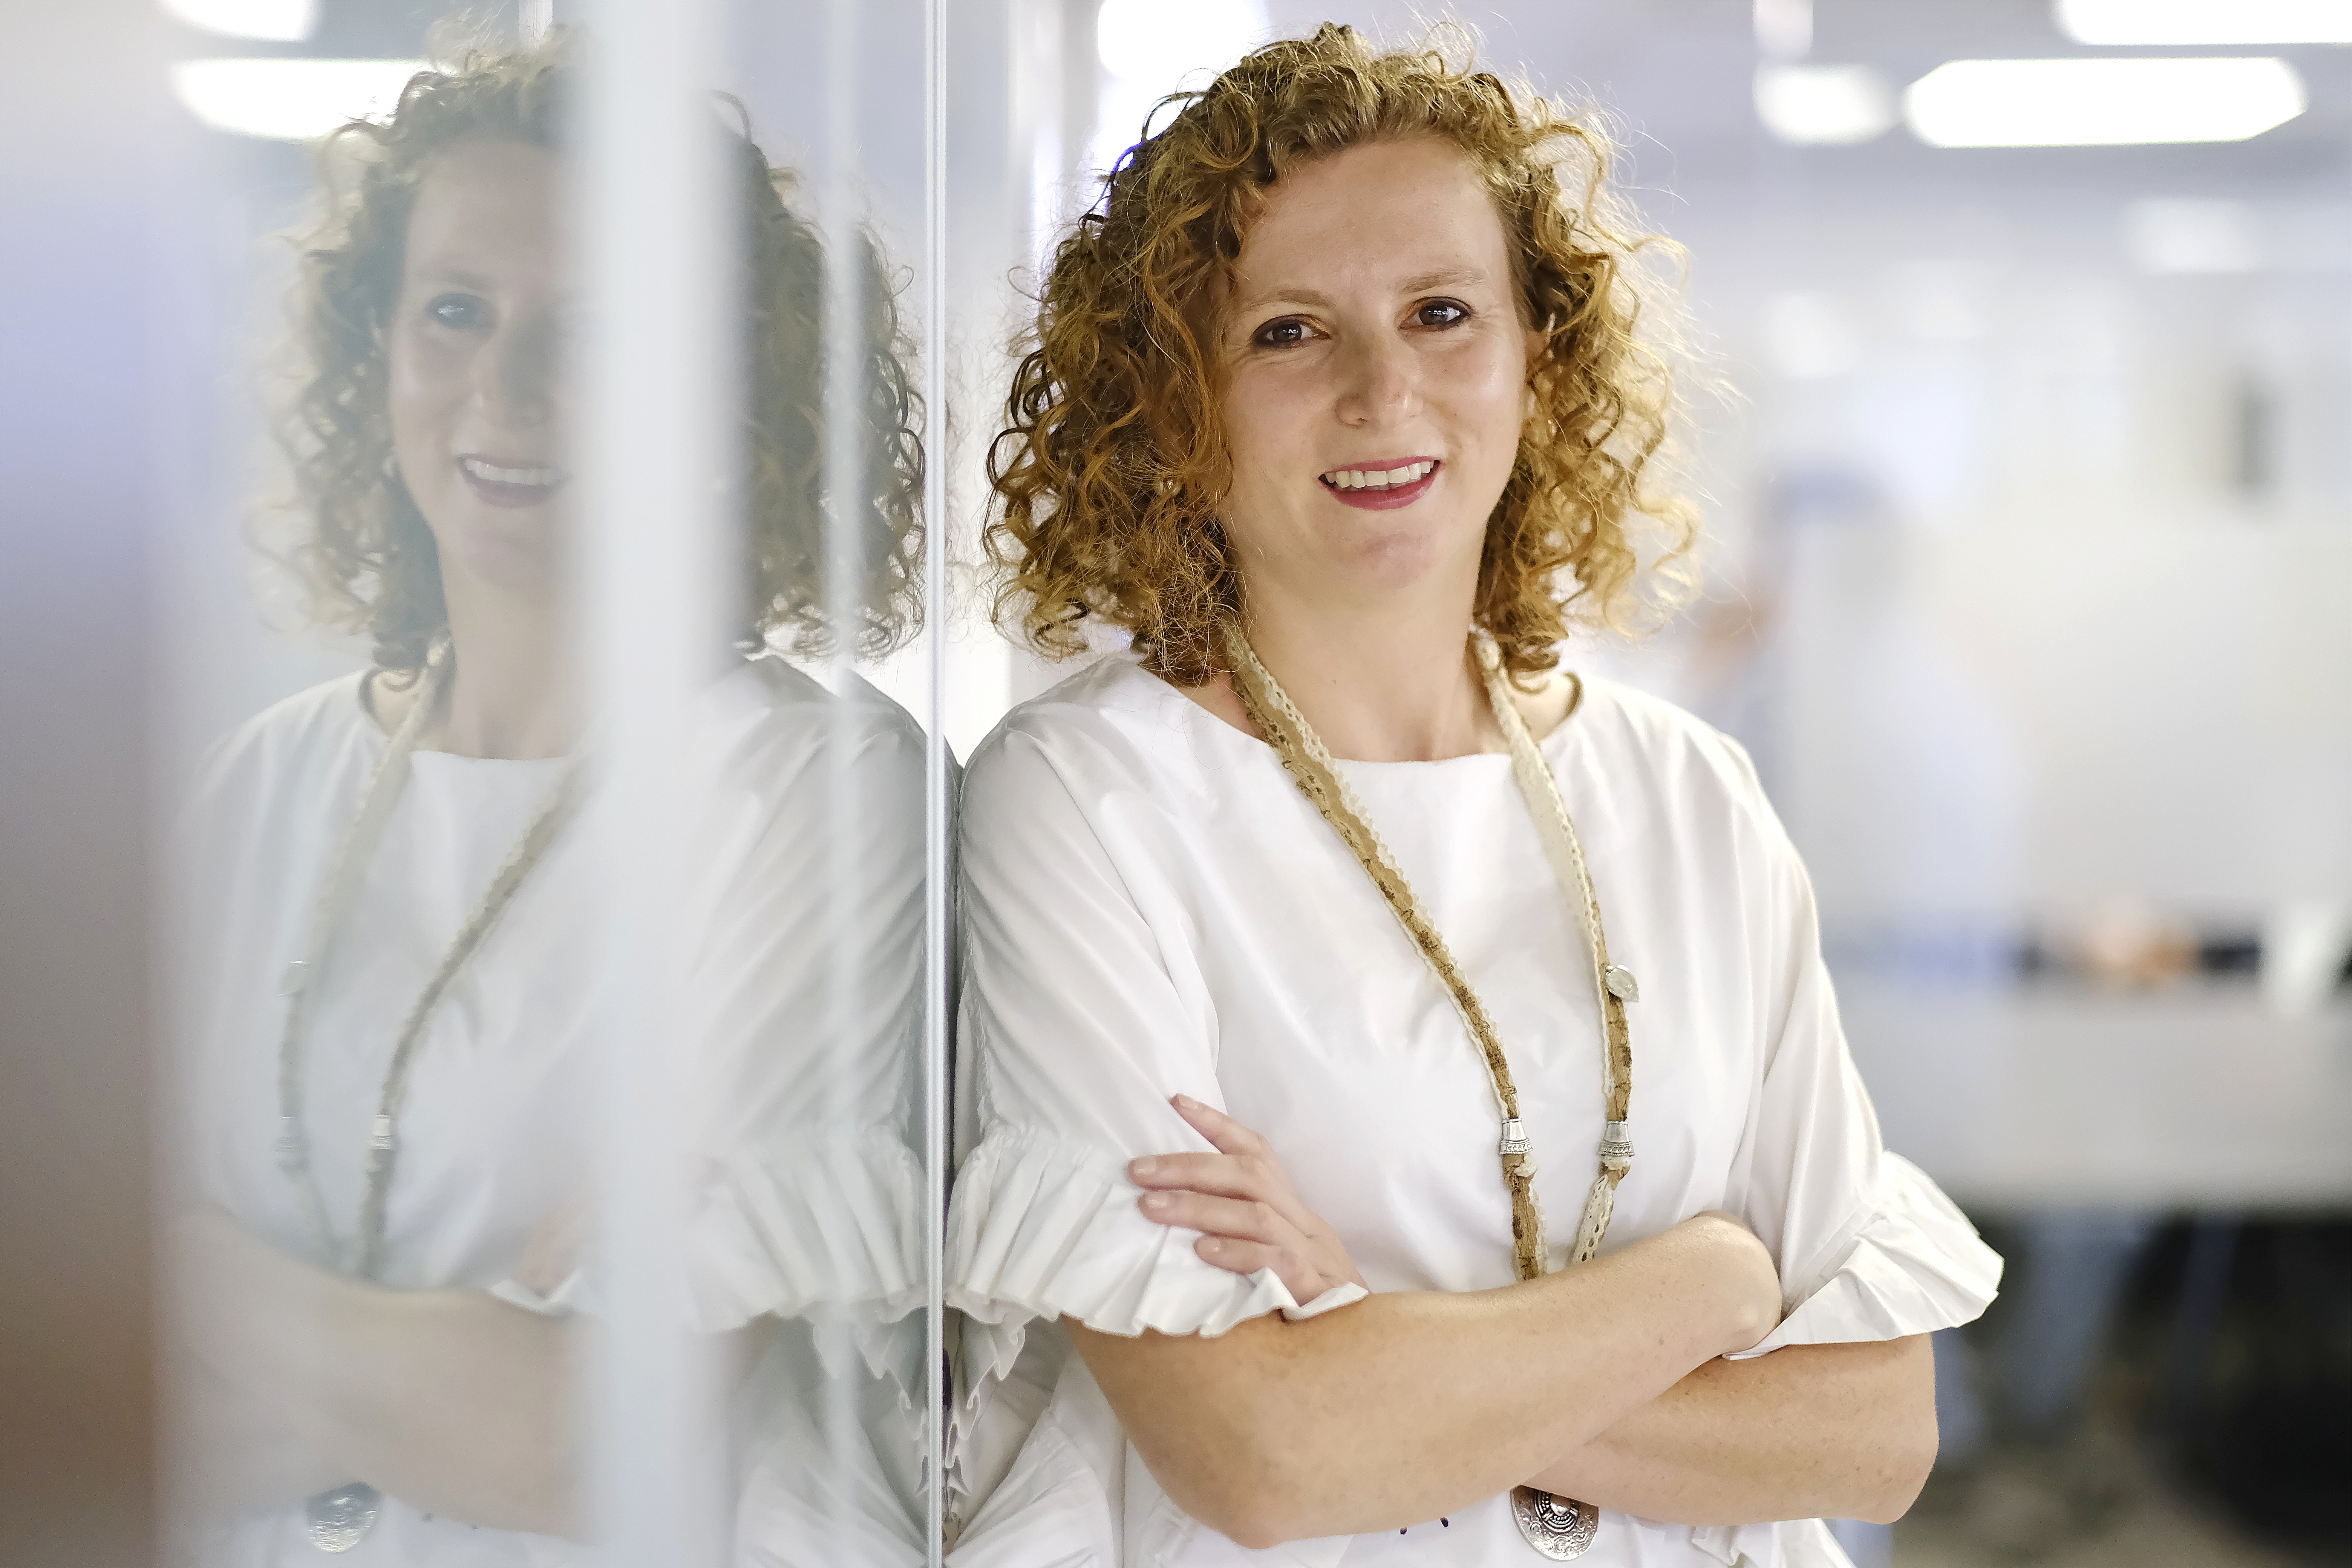 A woman with red curly hair leans smiling against a wall